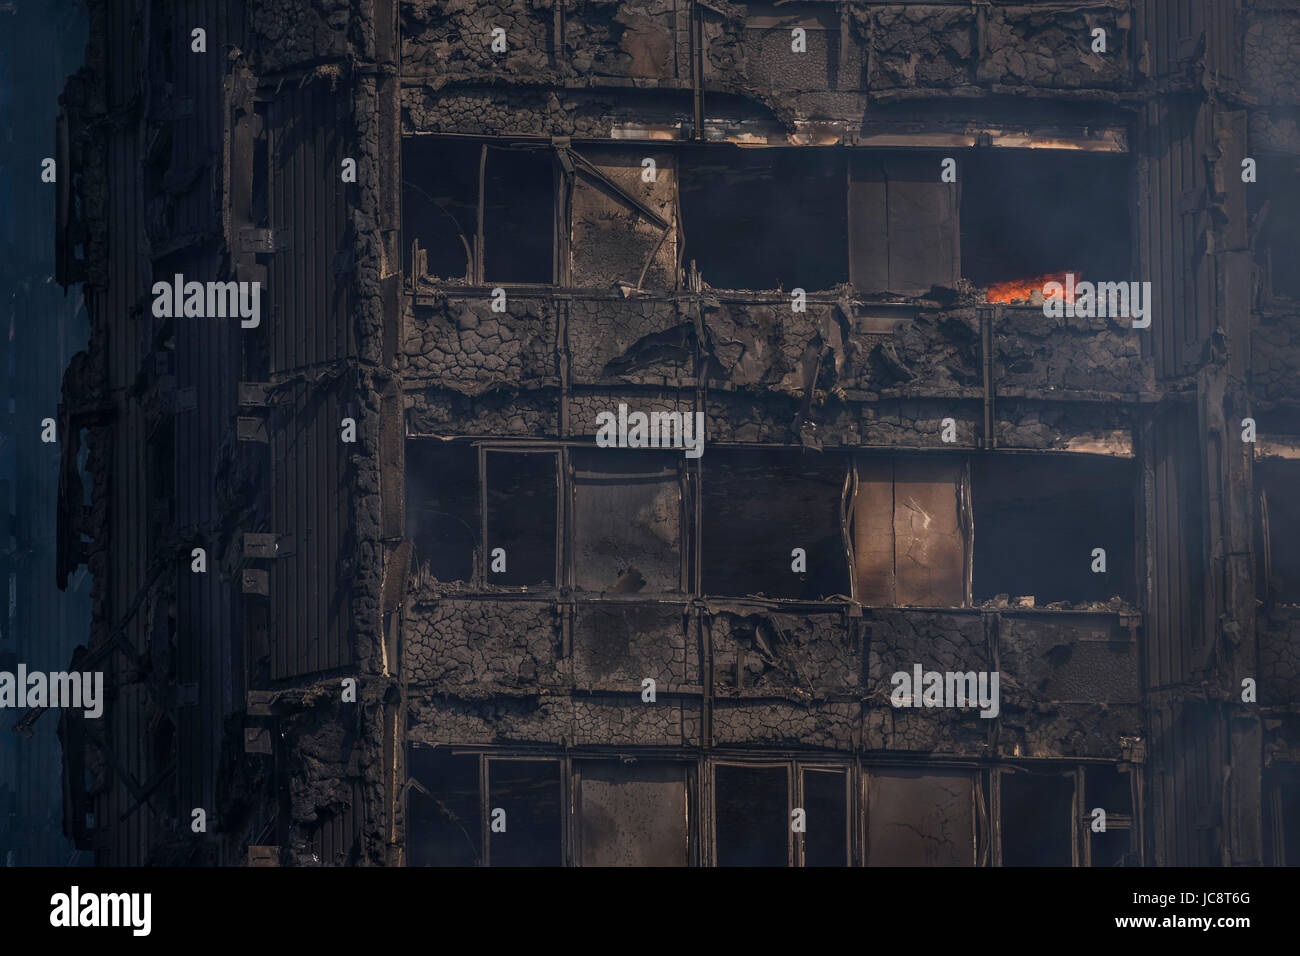 London, UK. 14th June, 2017. Grenfell Tower - The charred remains of the tower block that caught fire last night - Stock Image